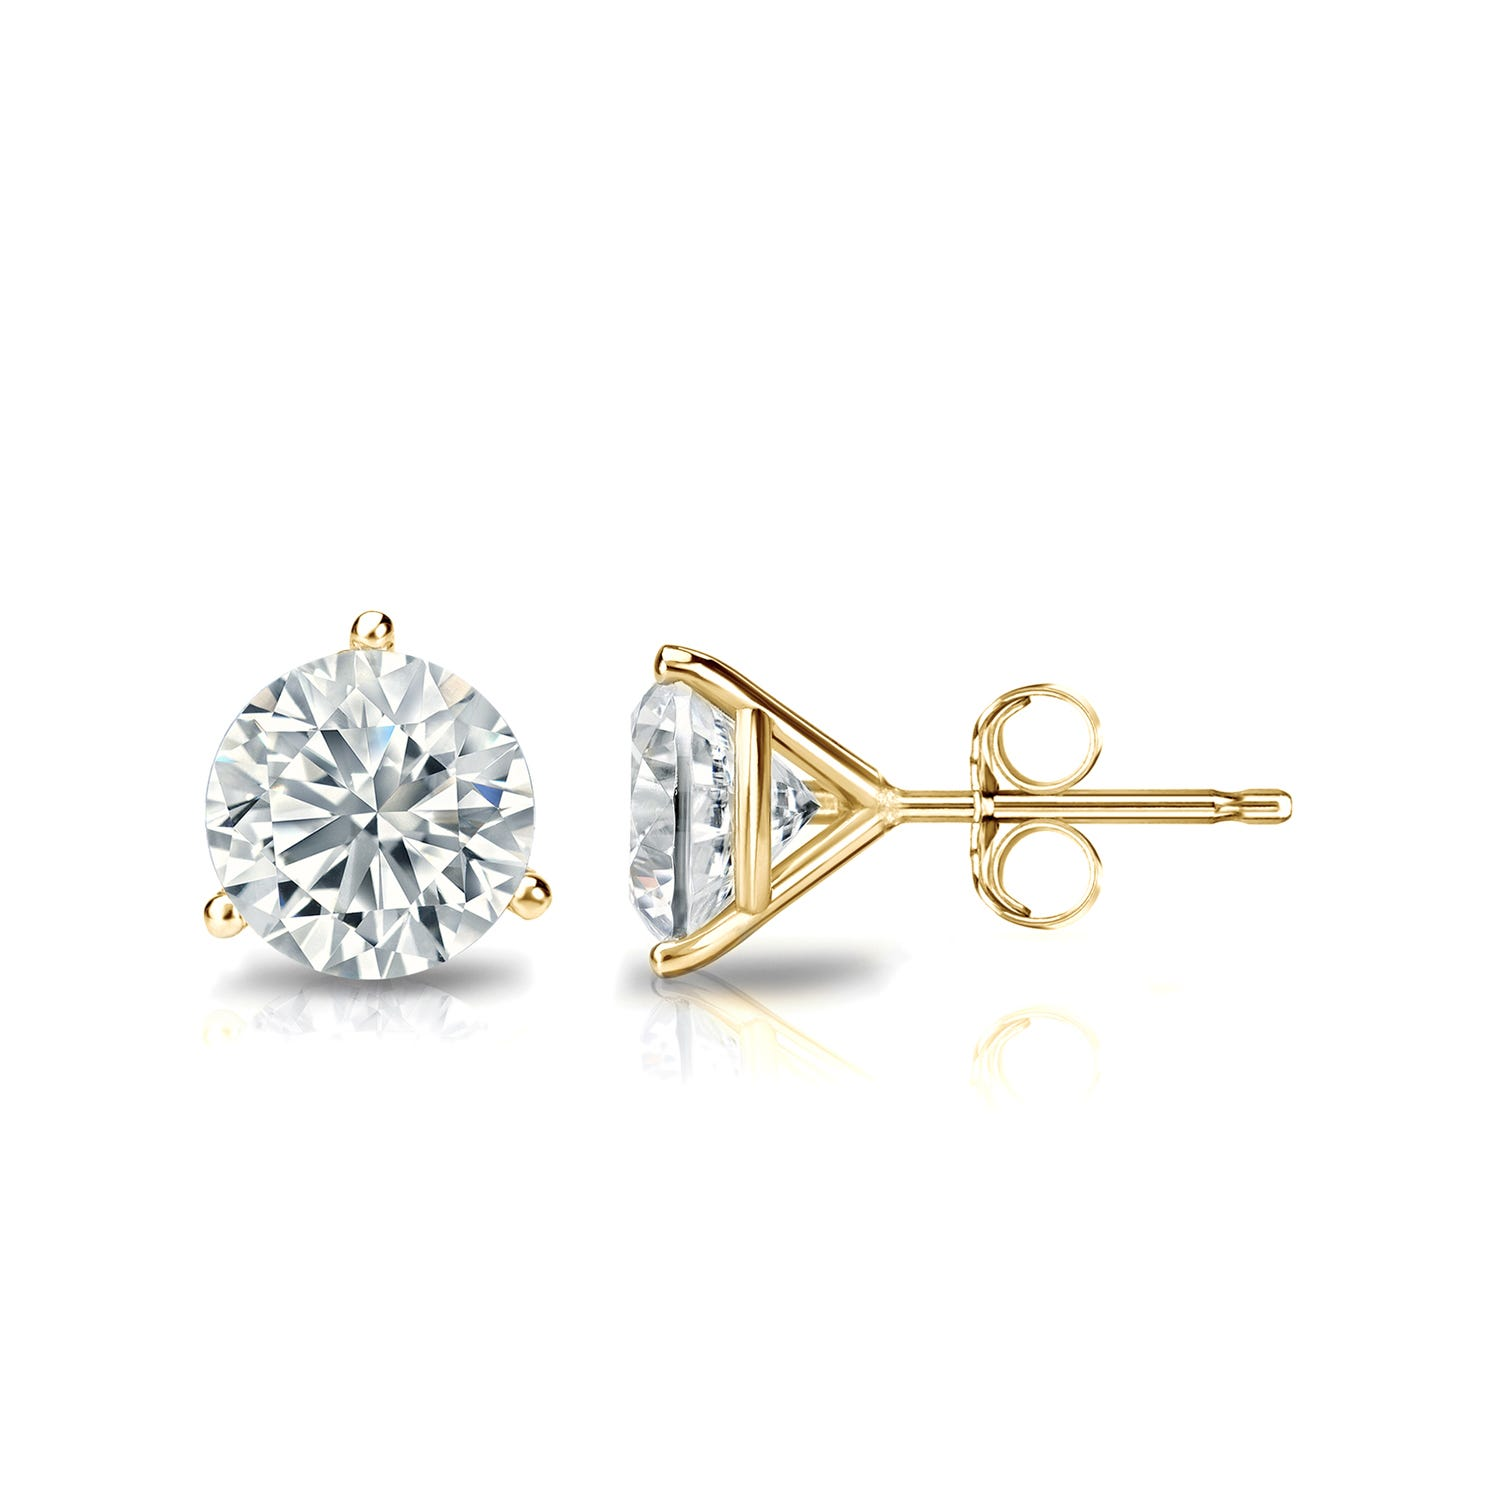 1 CTTW Round Diamond Solitaire Stud Earrings IJ I1 in 18K Yellow Gold IGI Certified 3-Prong Setting